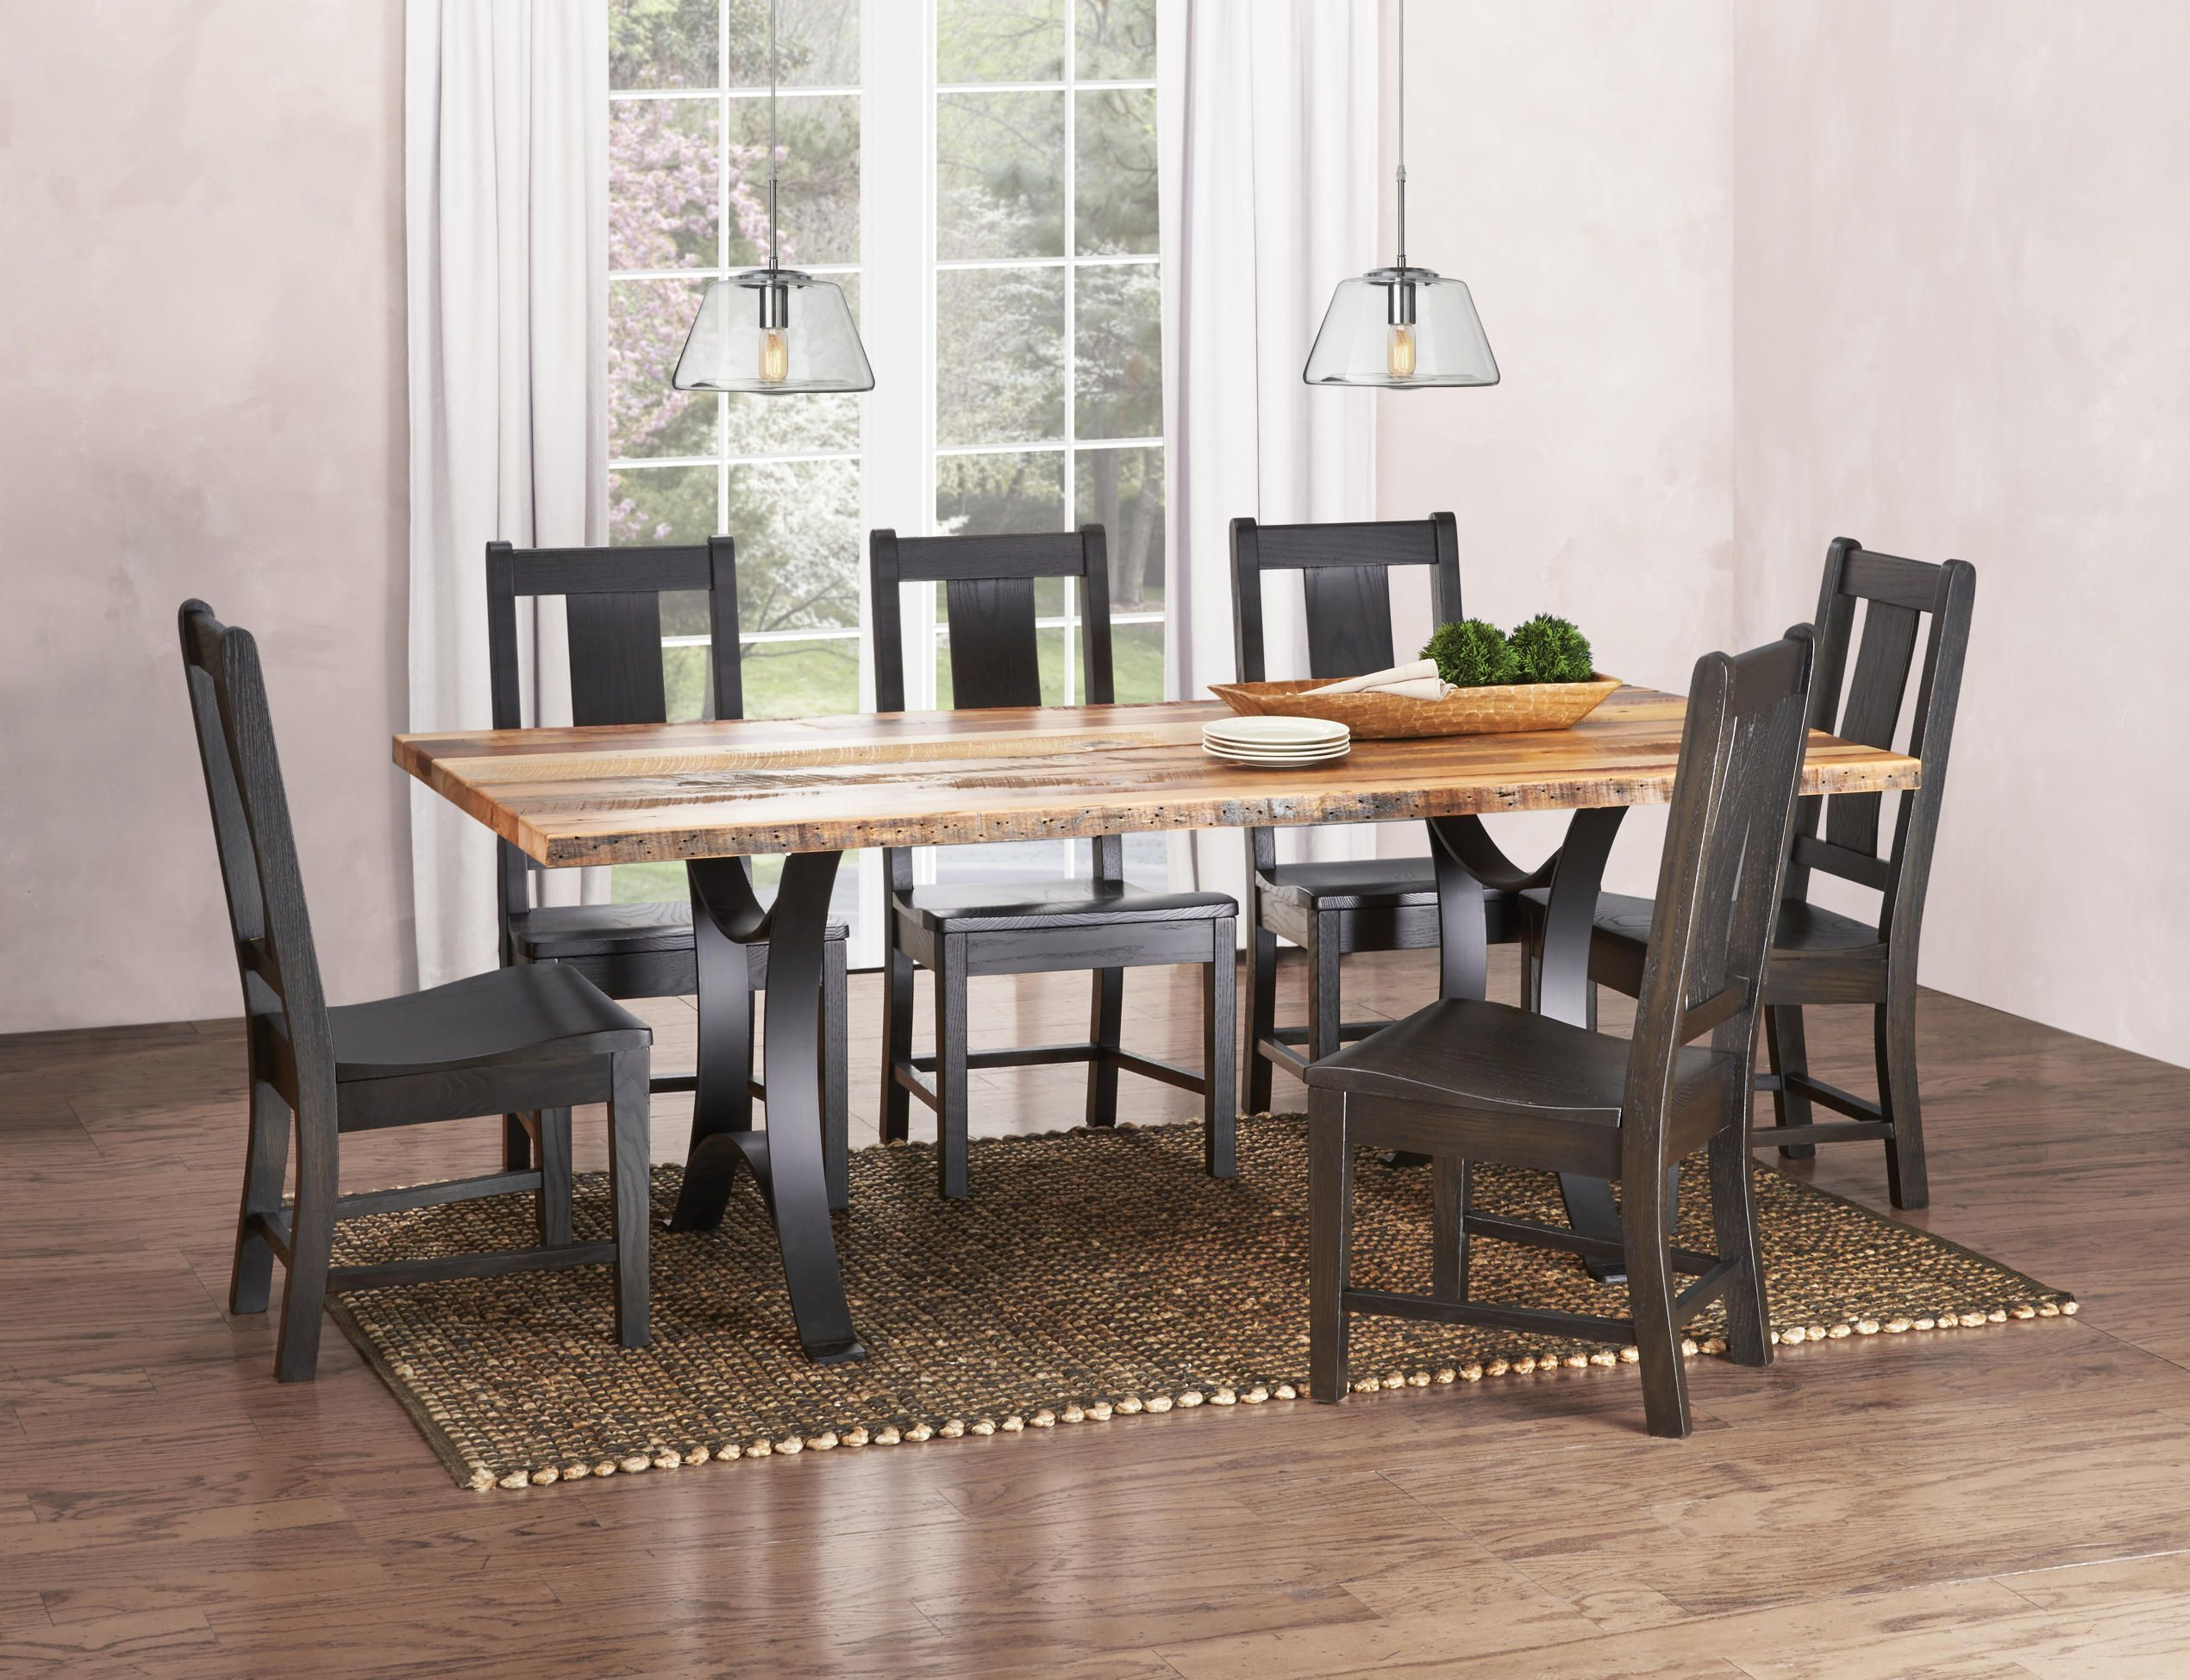 Reclaimed Barn Wood From Michigan Left In Its Natural Finish Paired With Bent Steel And Beautiful WoodTable LegsOak ChairsDining